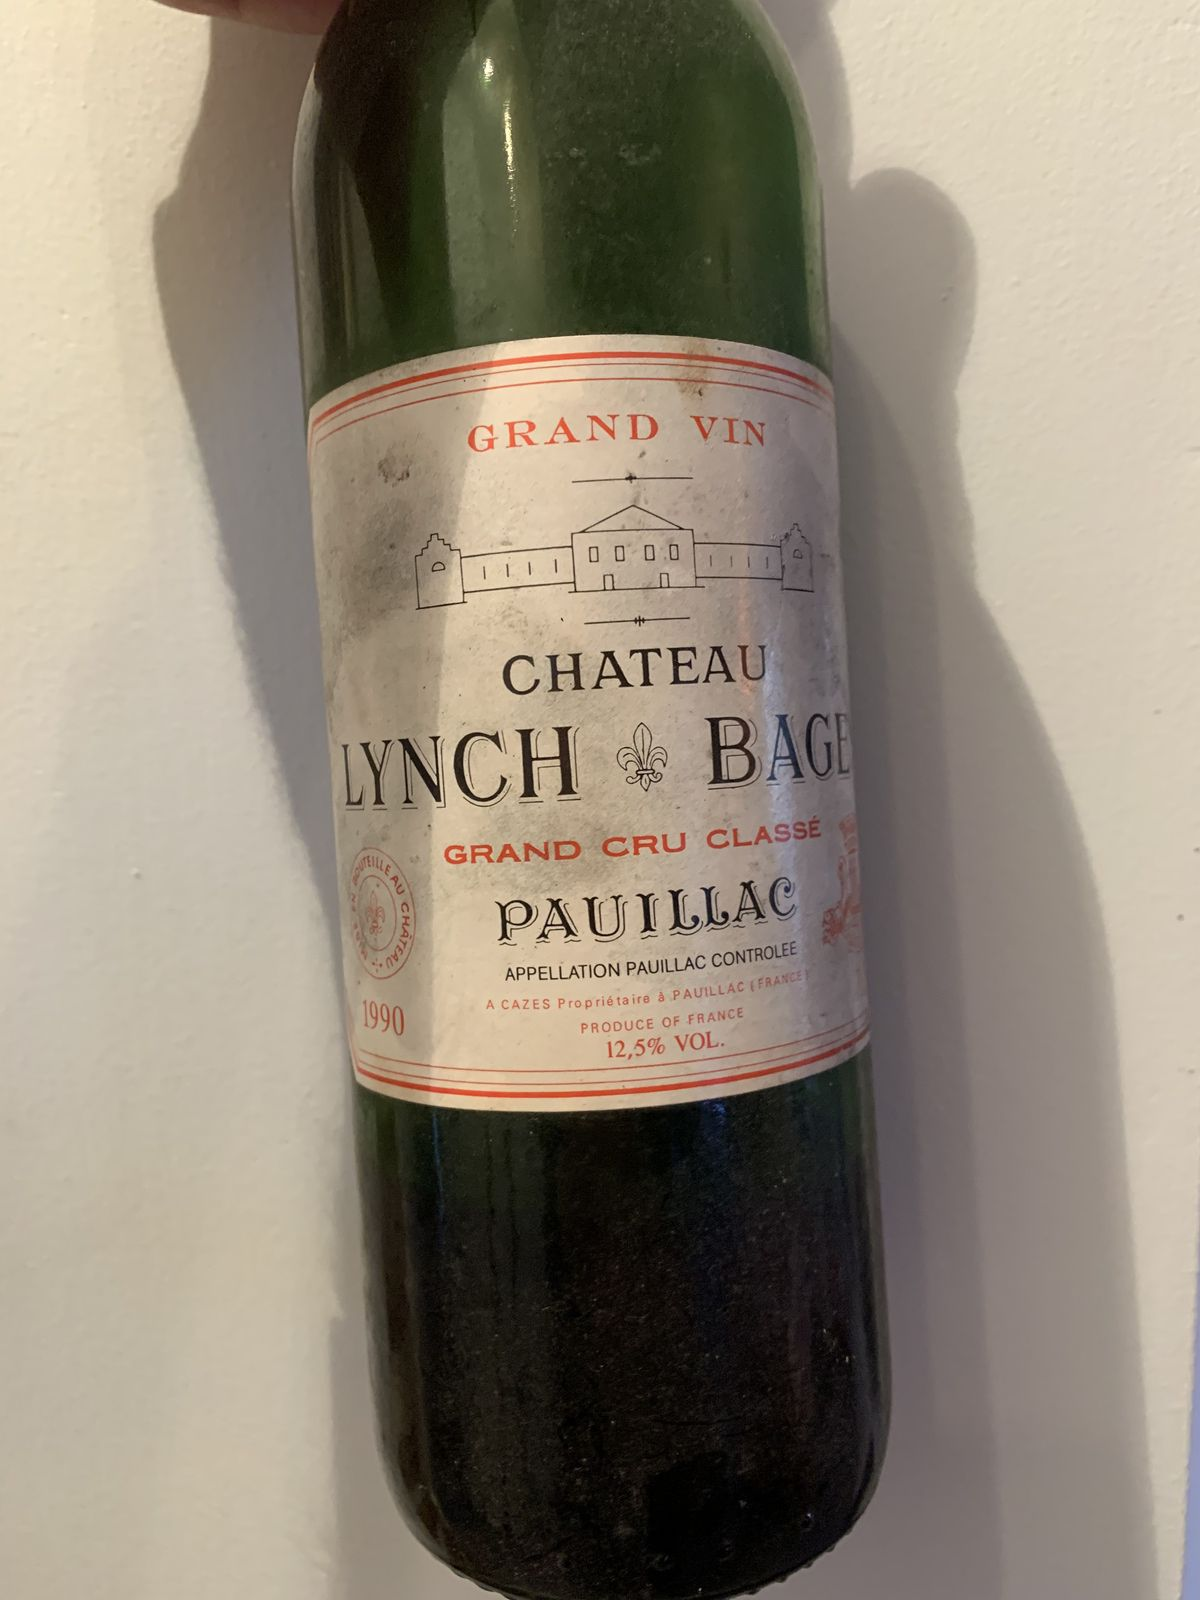 Pauillac Lynch bages 1990